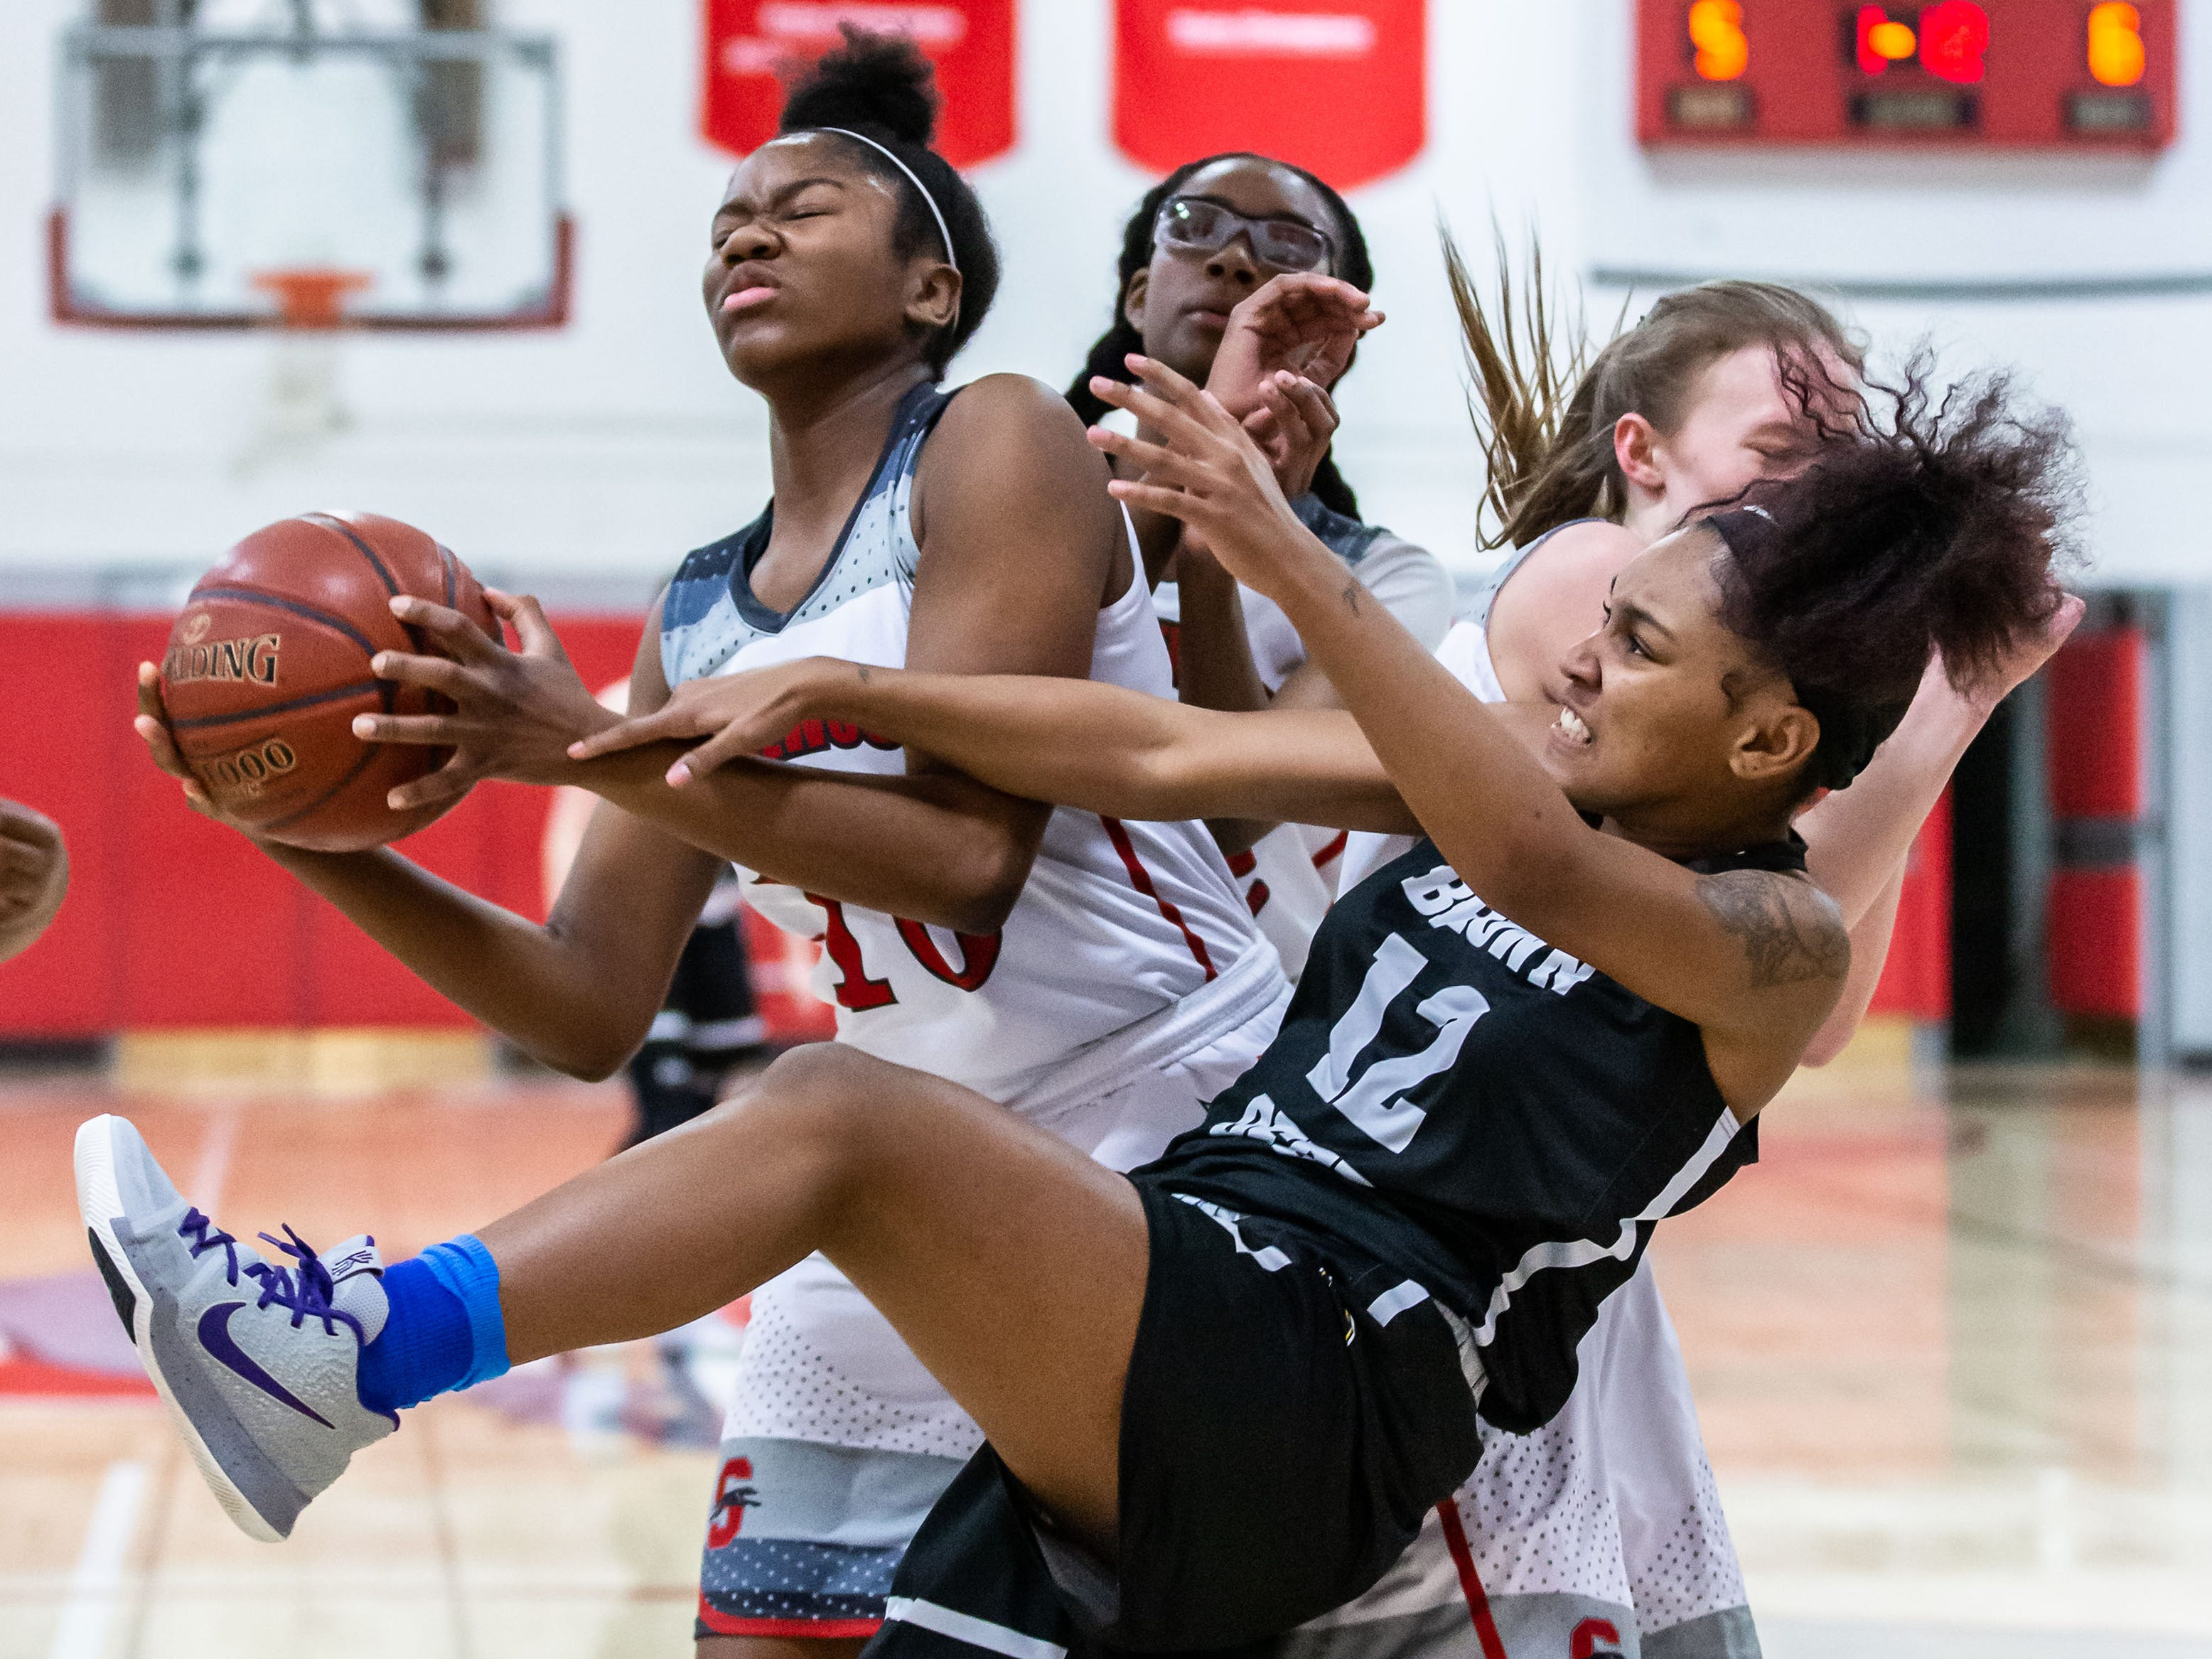 Shorewood's Ta'Niya Robinson (left) battles for a rebound with Brown Deer's Olivia Sellers (12) during the game at Shorewood on Wednesday, Feb. 6, 2019.